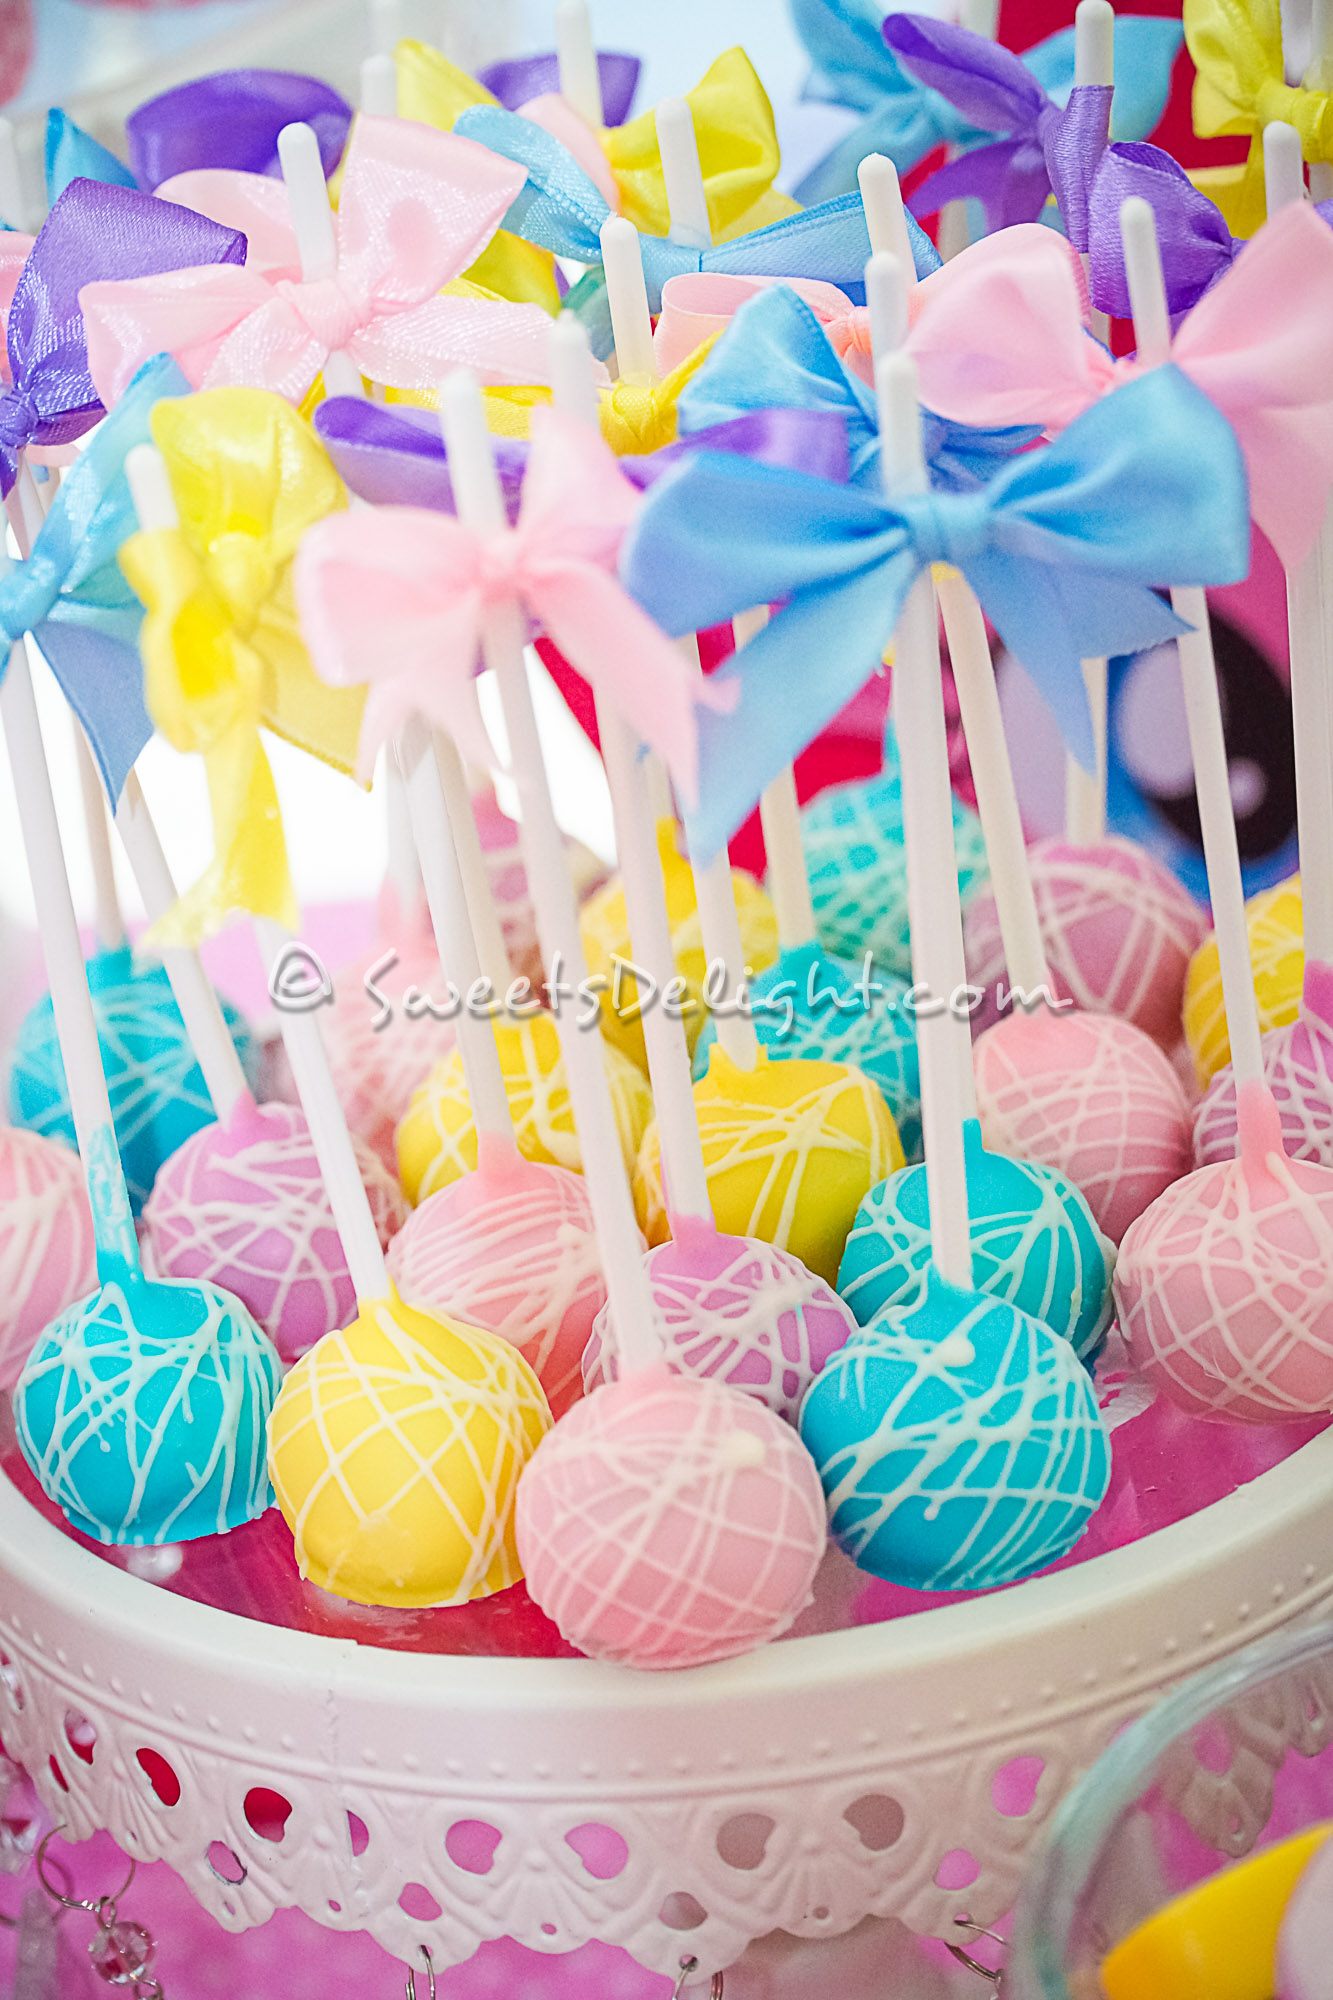 My Little Pony Party Sweets Delight